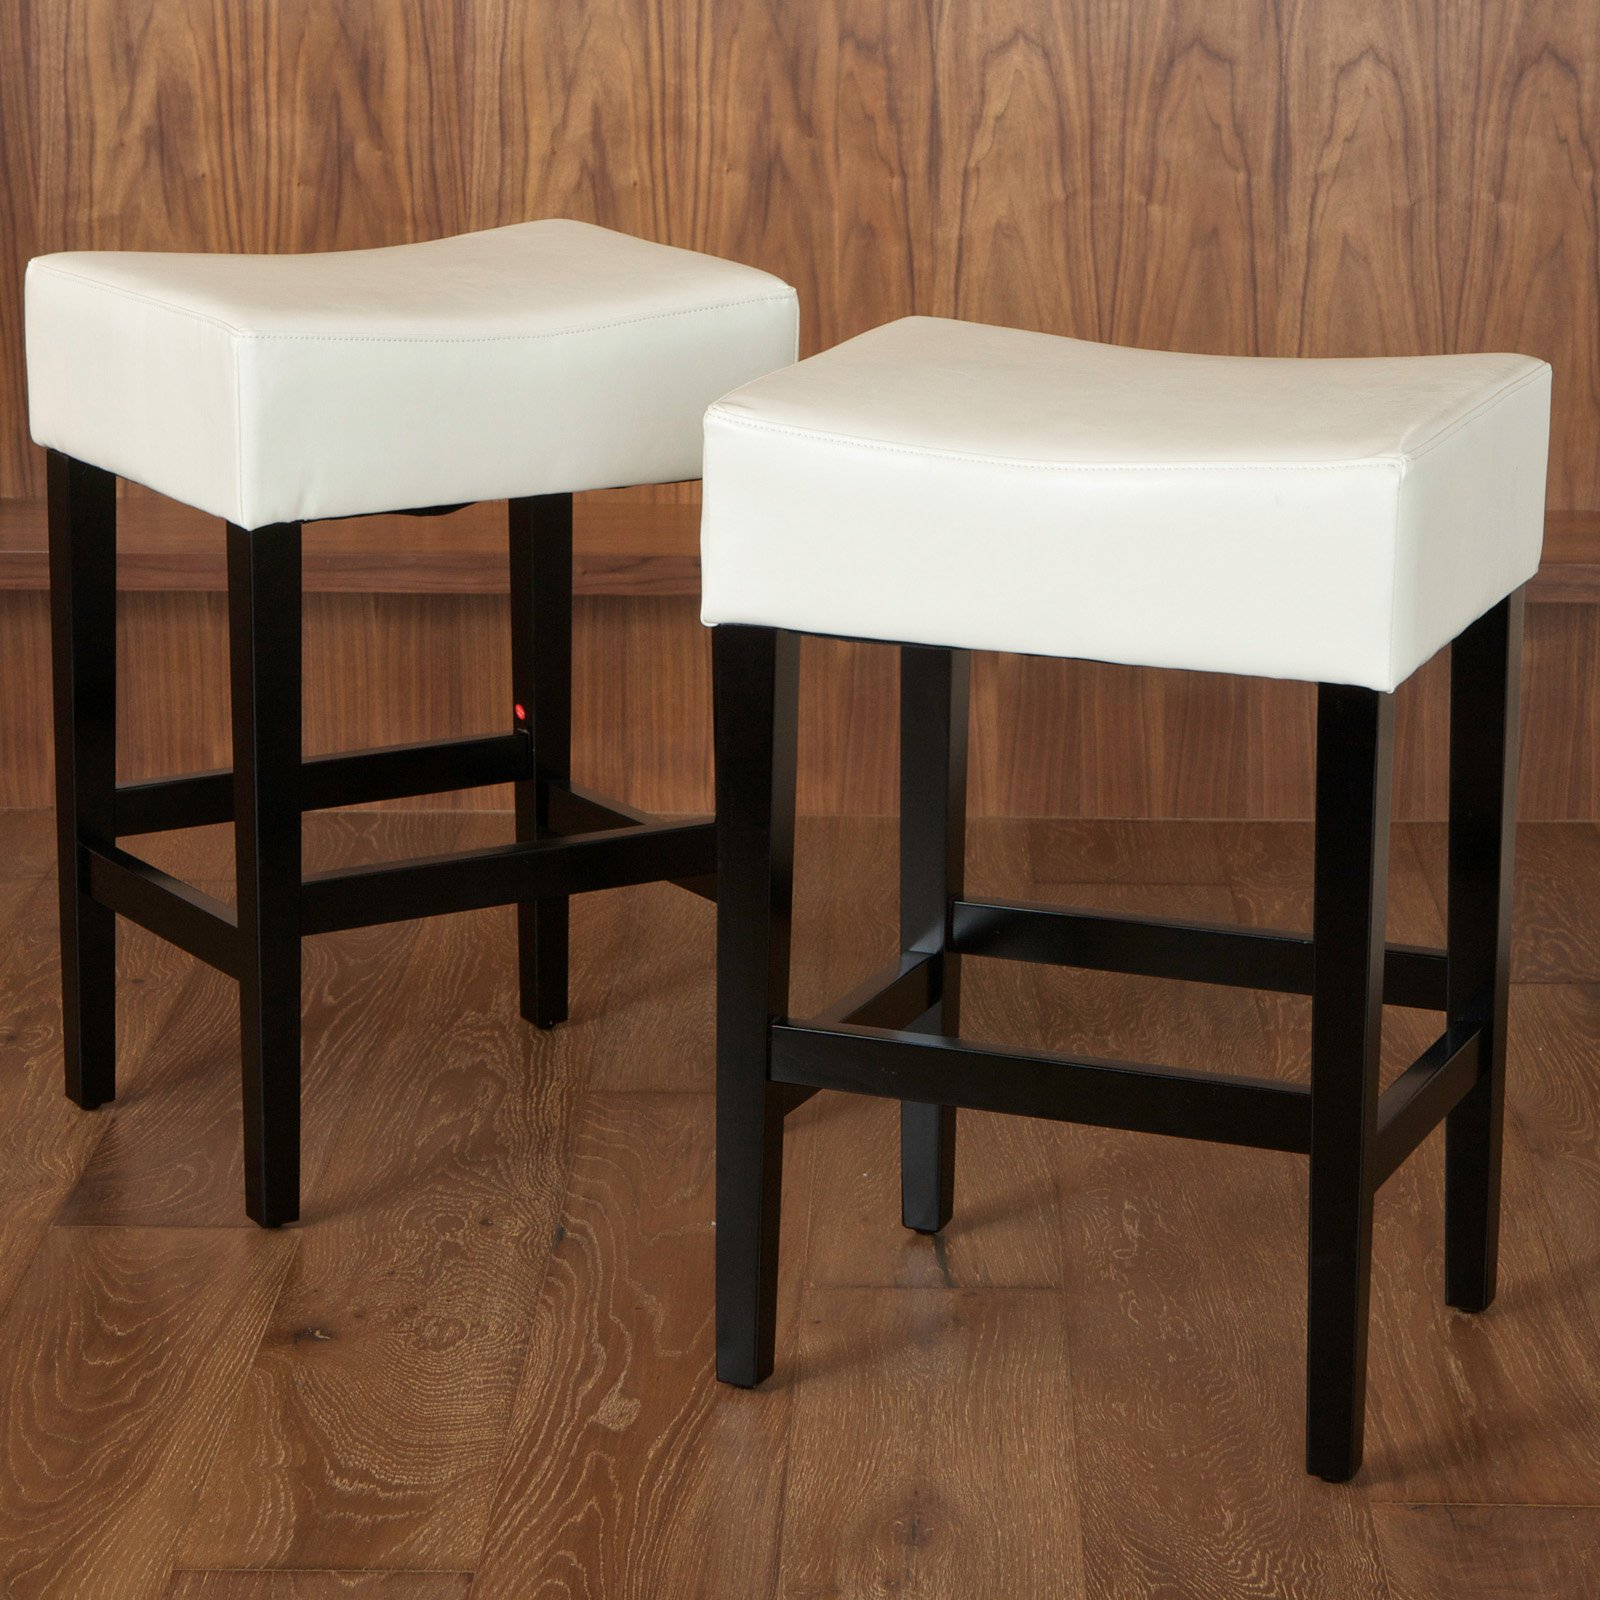 Lopez Backless Ivory Leather Counter Stools - 2 Pack